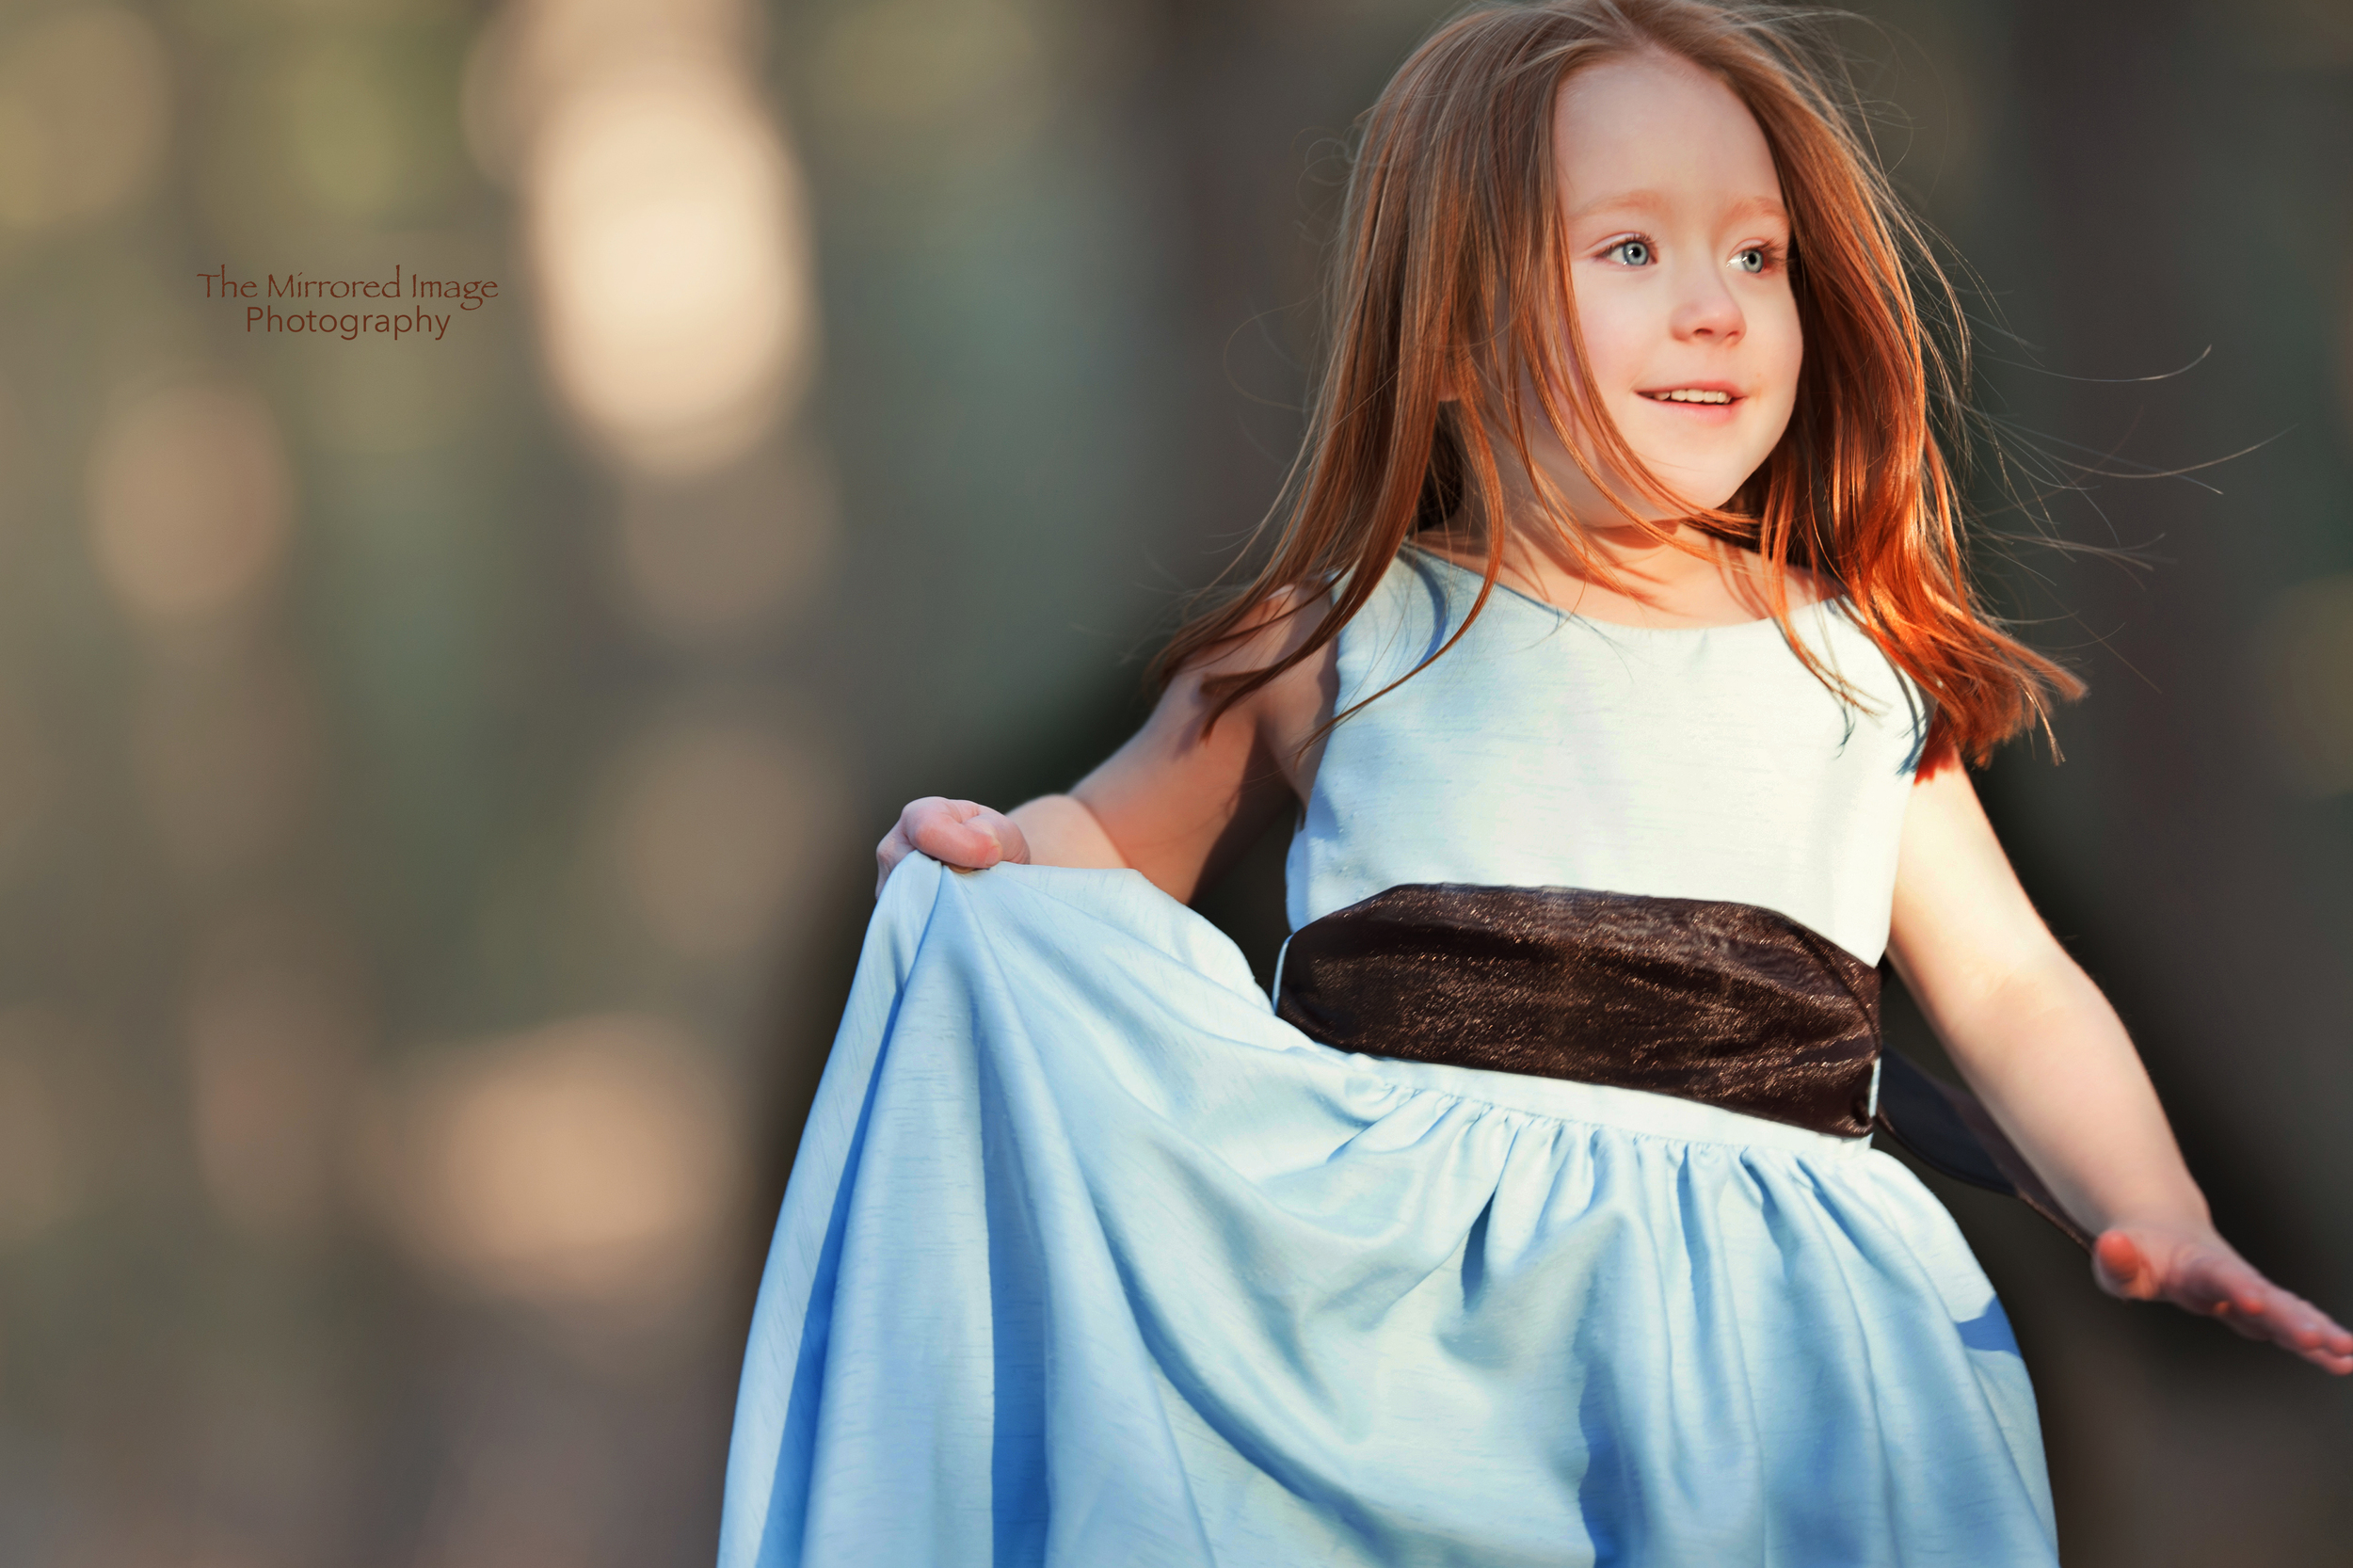 Fine art children's photography, children's photographer, kids photography, professional photographer, professional photography, ethereal photography, portrait photography, portrait photographer, family photographer, family photography